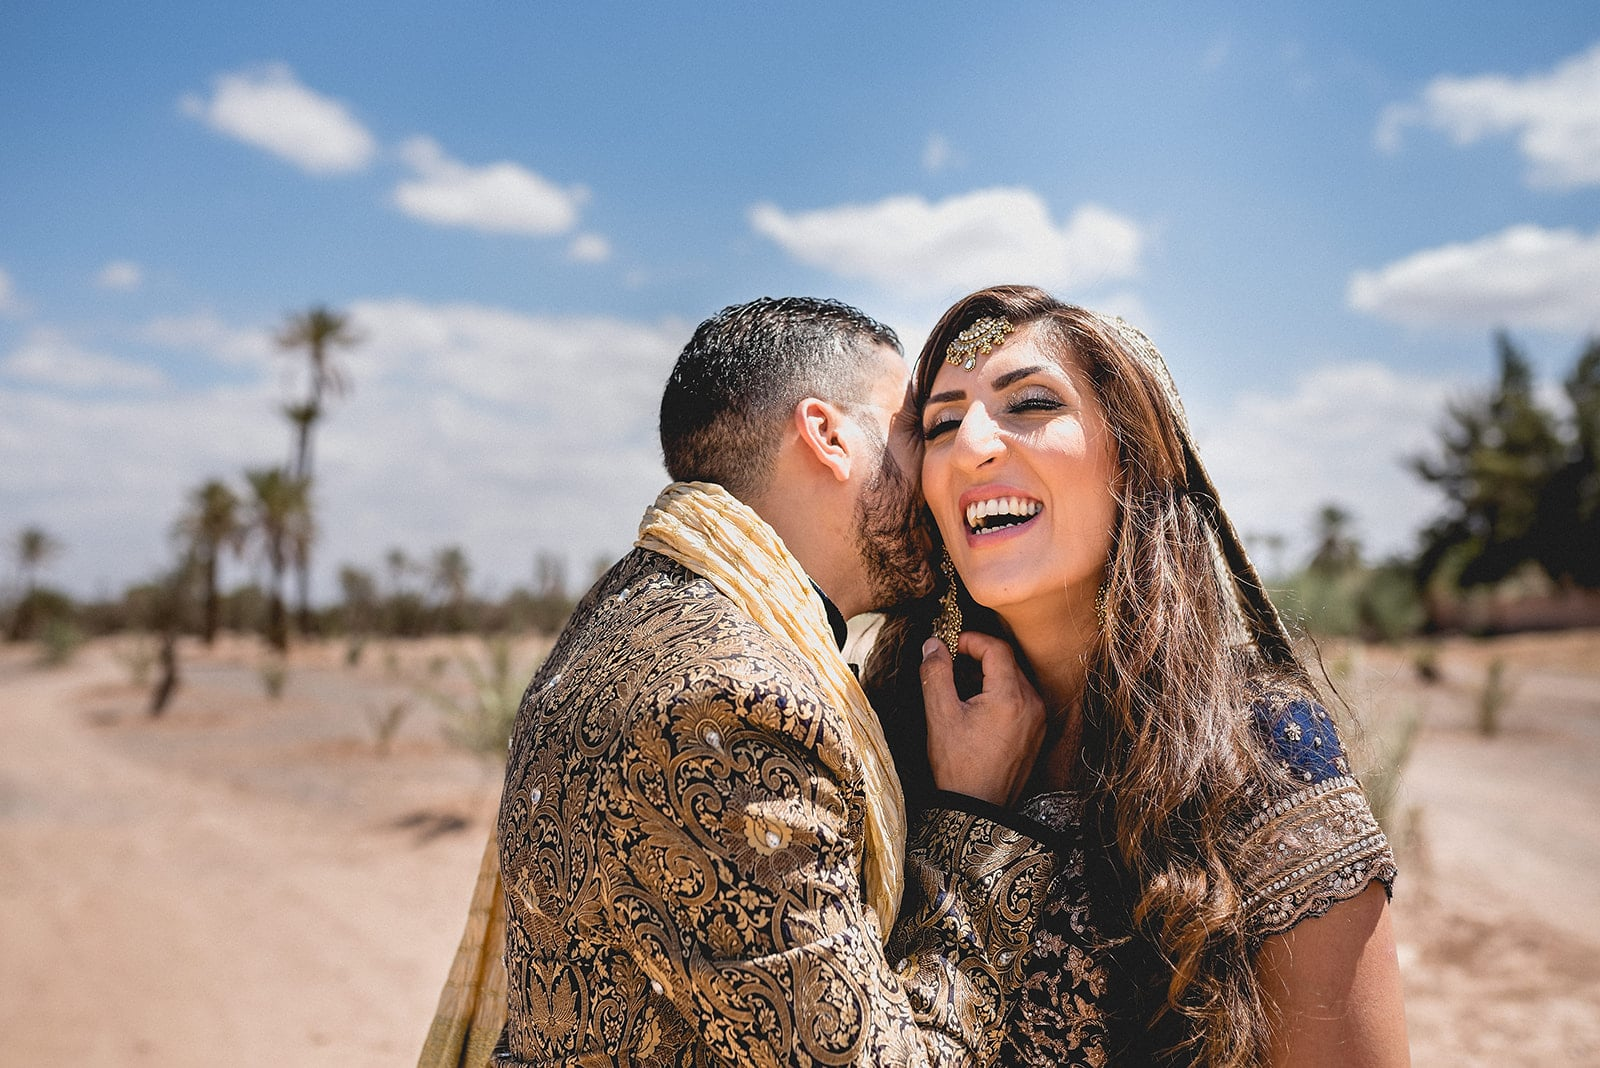 Moroccan Groom whispers into his bride's ear and pulls on her earring while she laughs in the Sahara desert